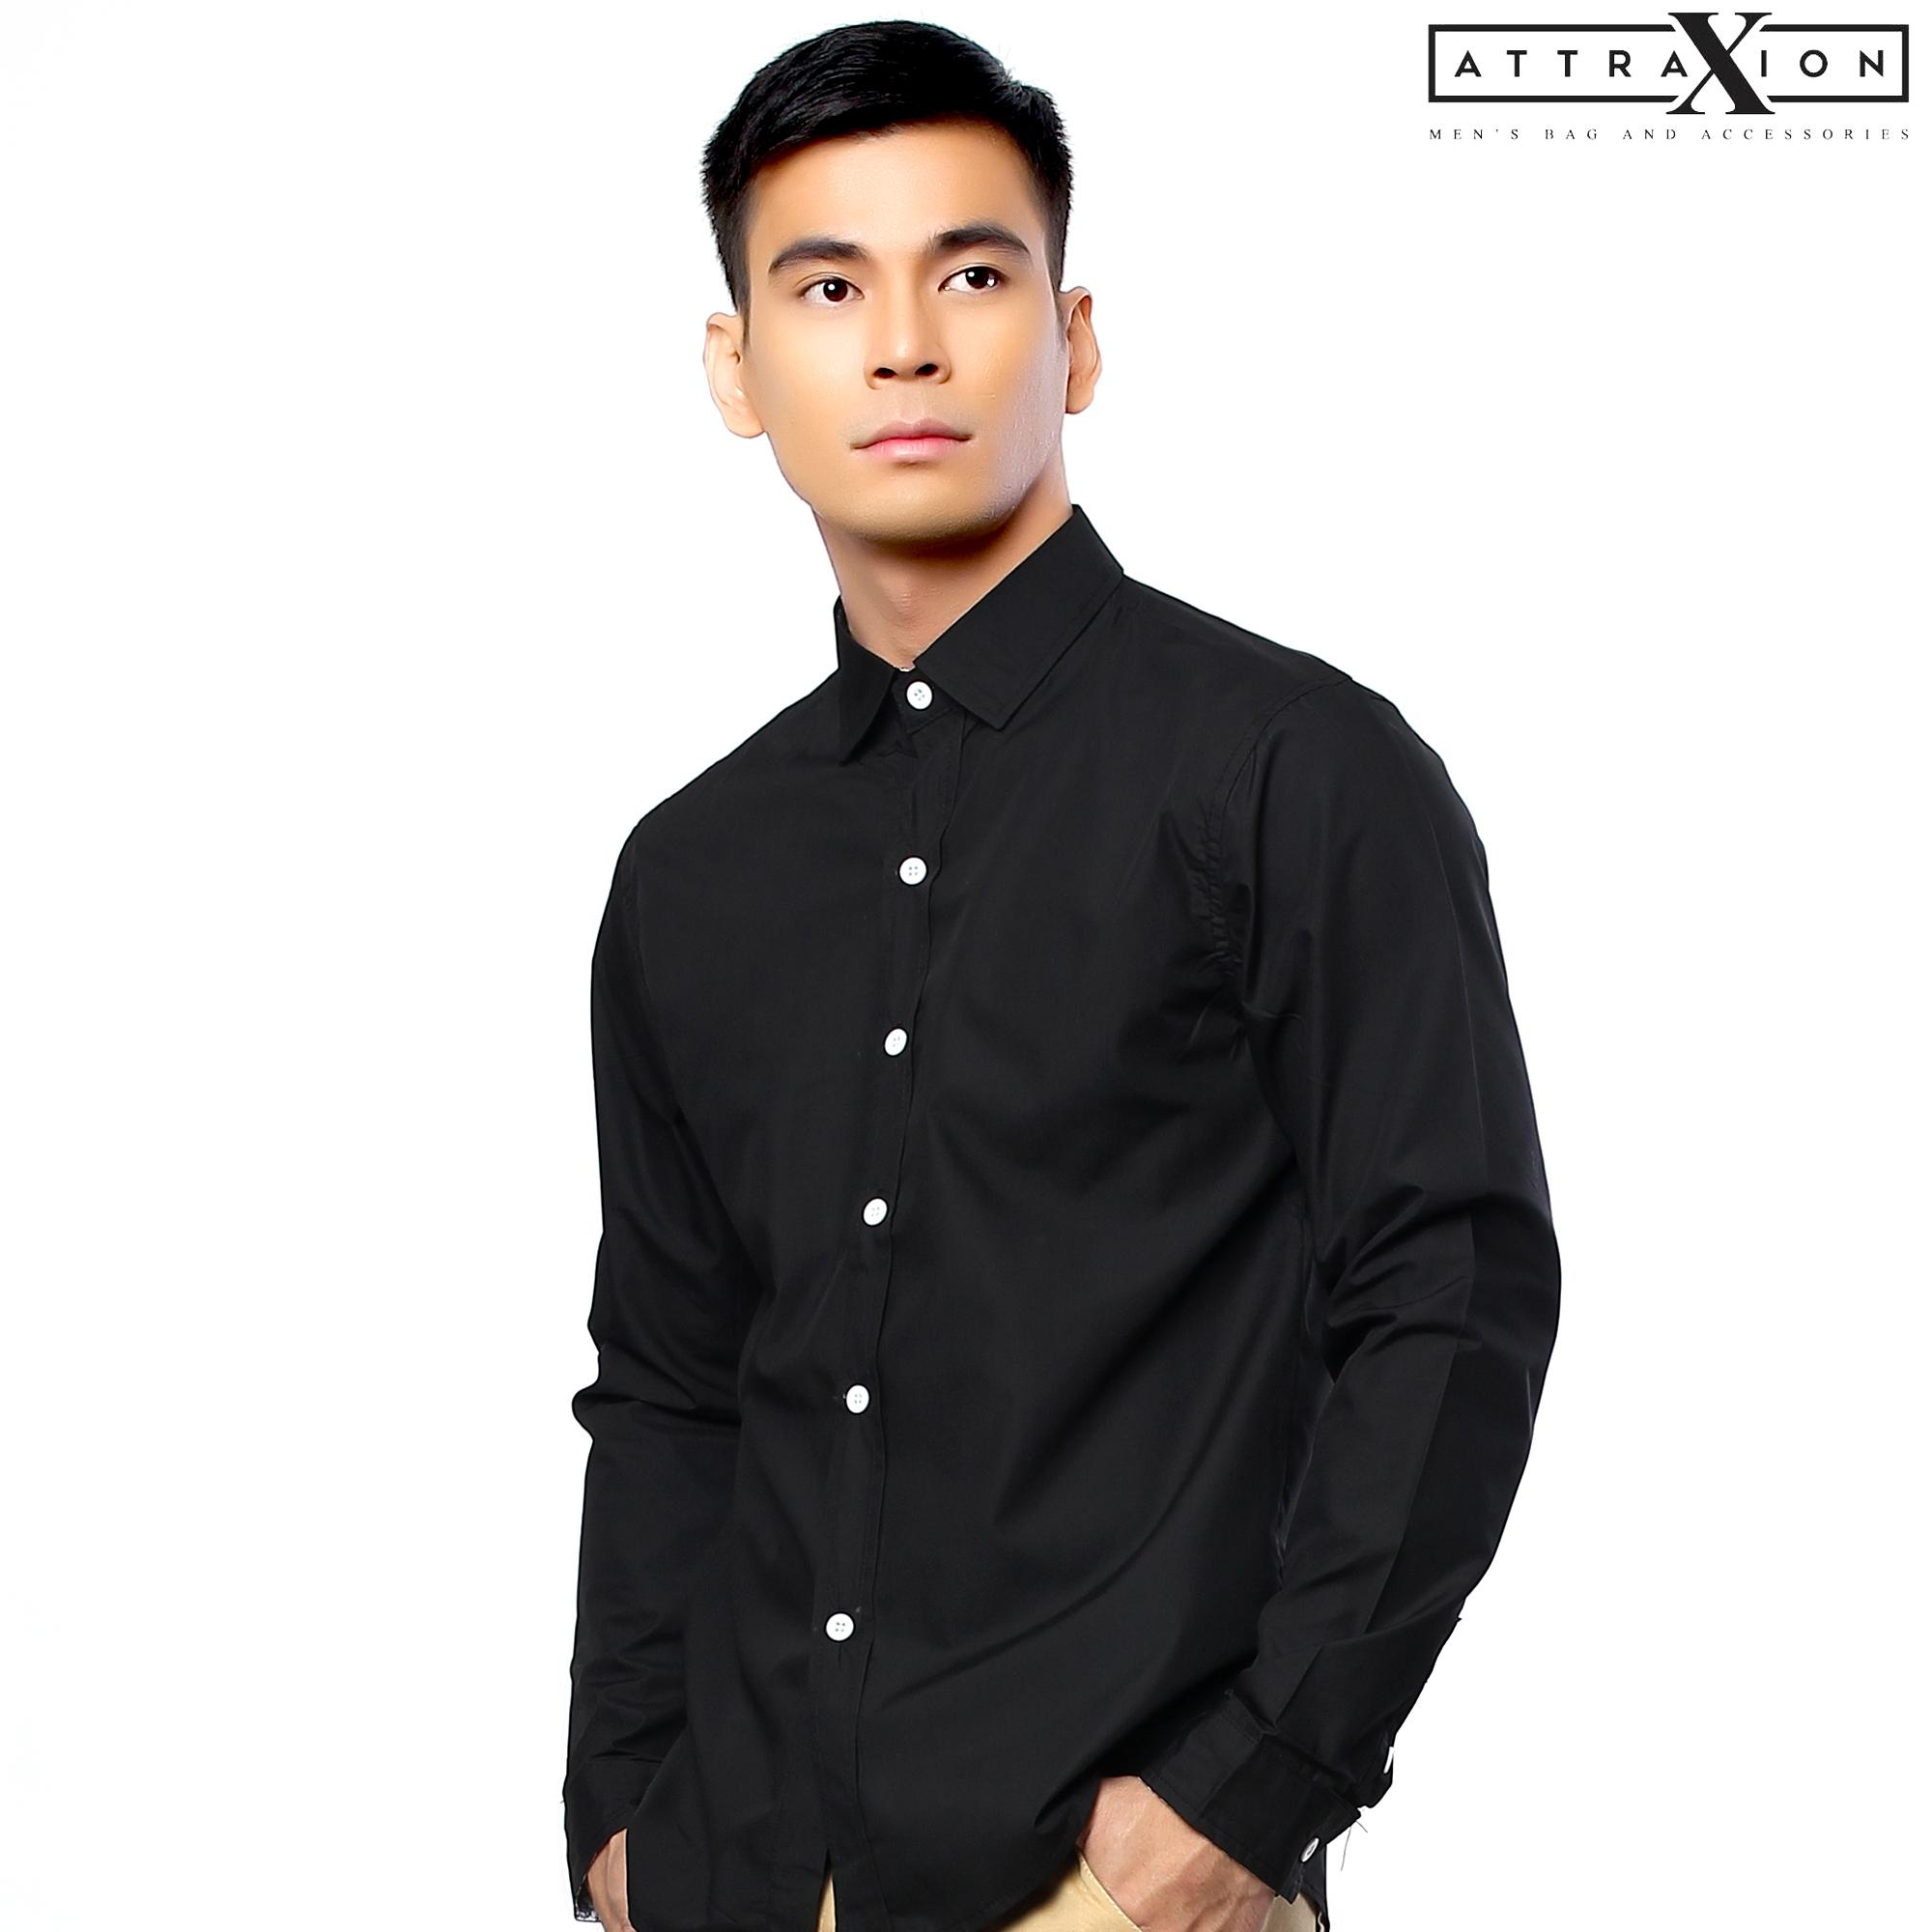 Shirt For Men For Sale Mens Fashion Shirt Online Brands Prices